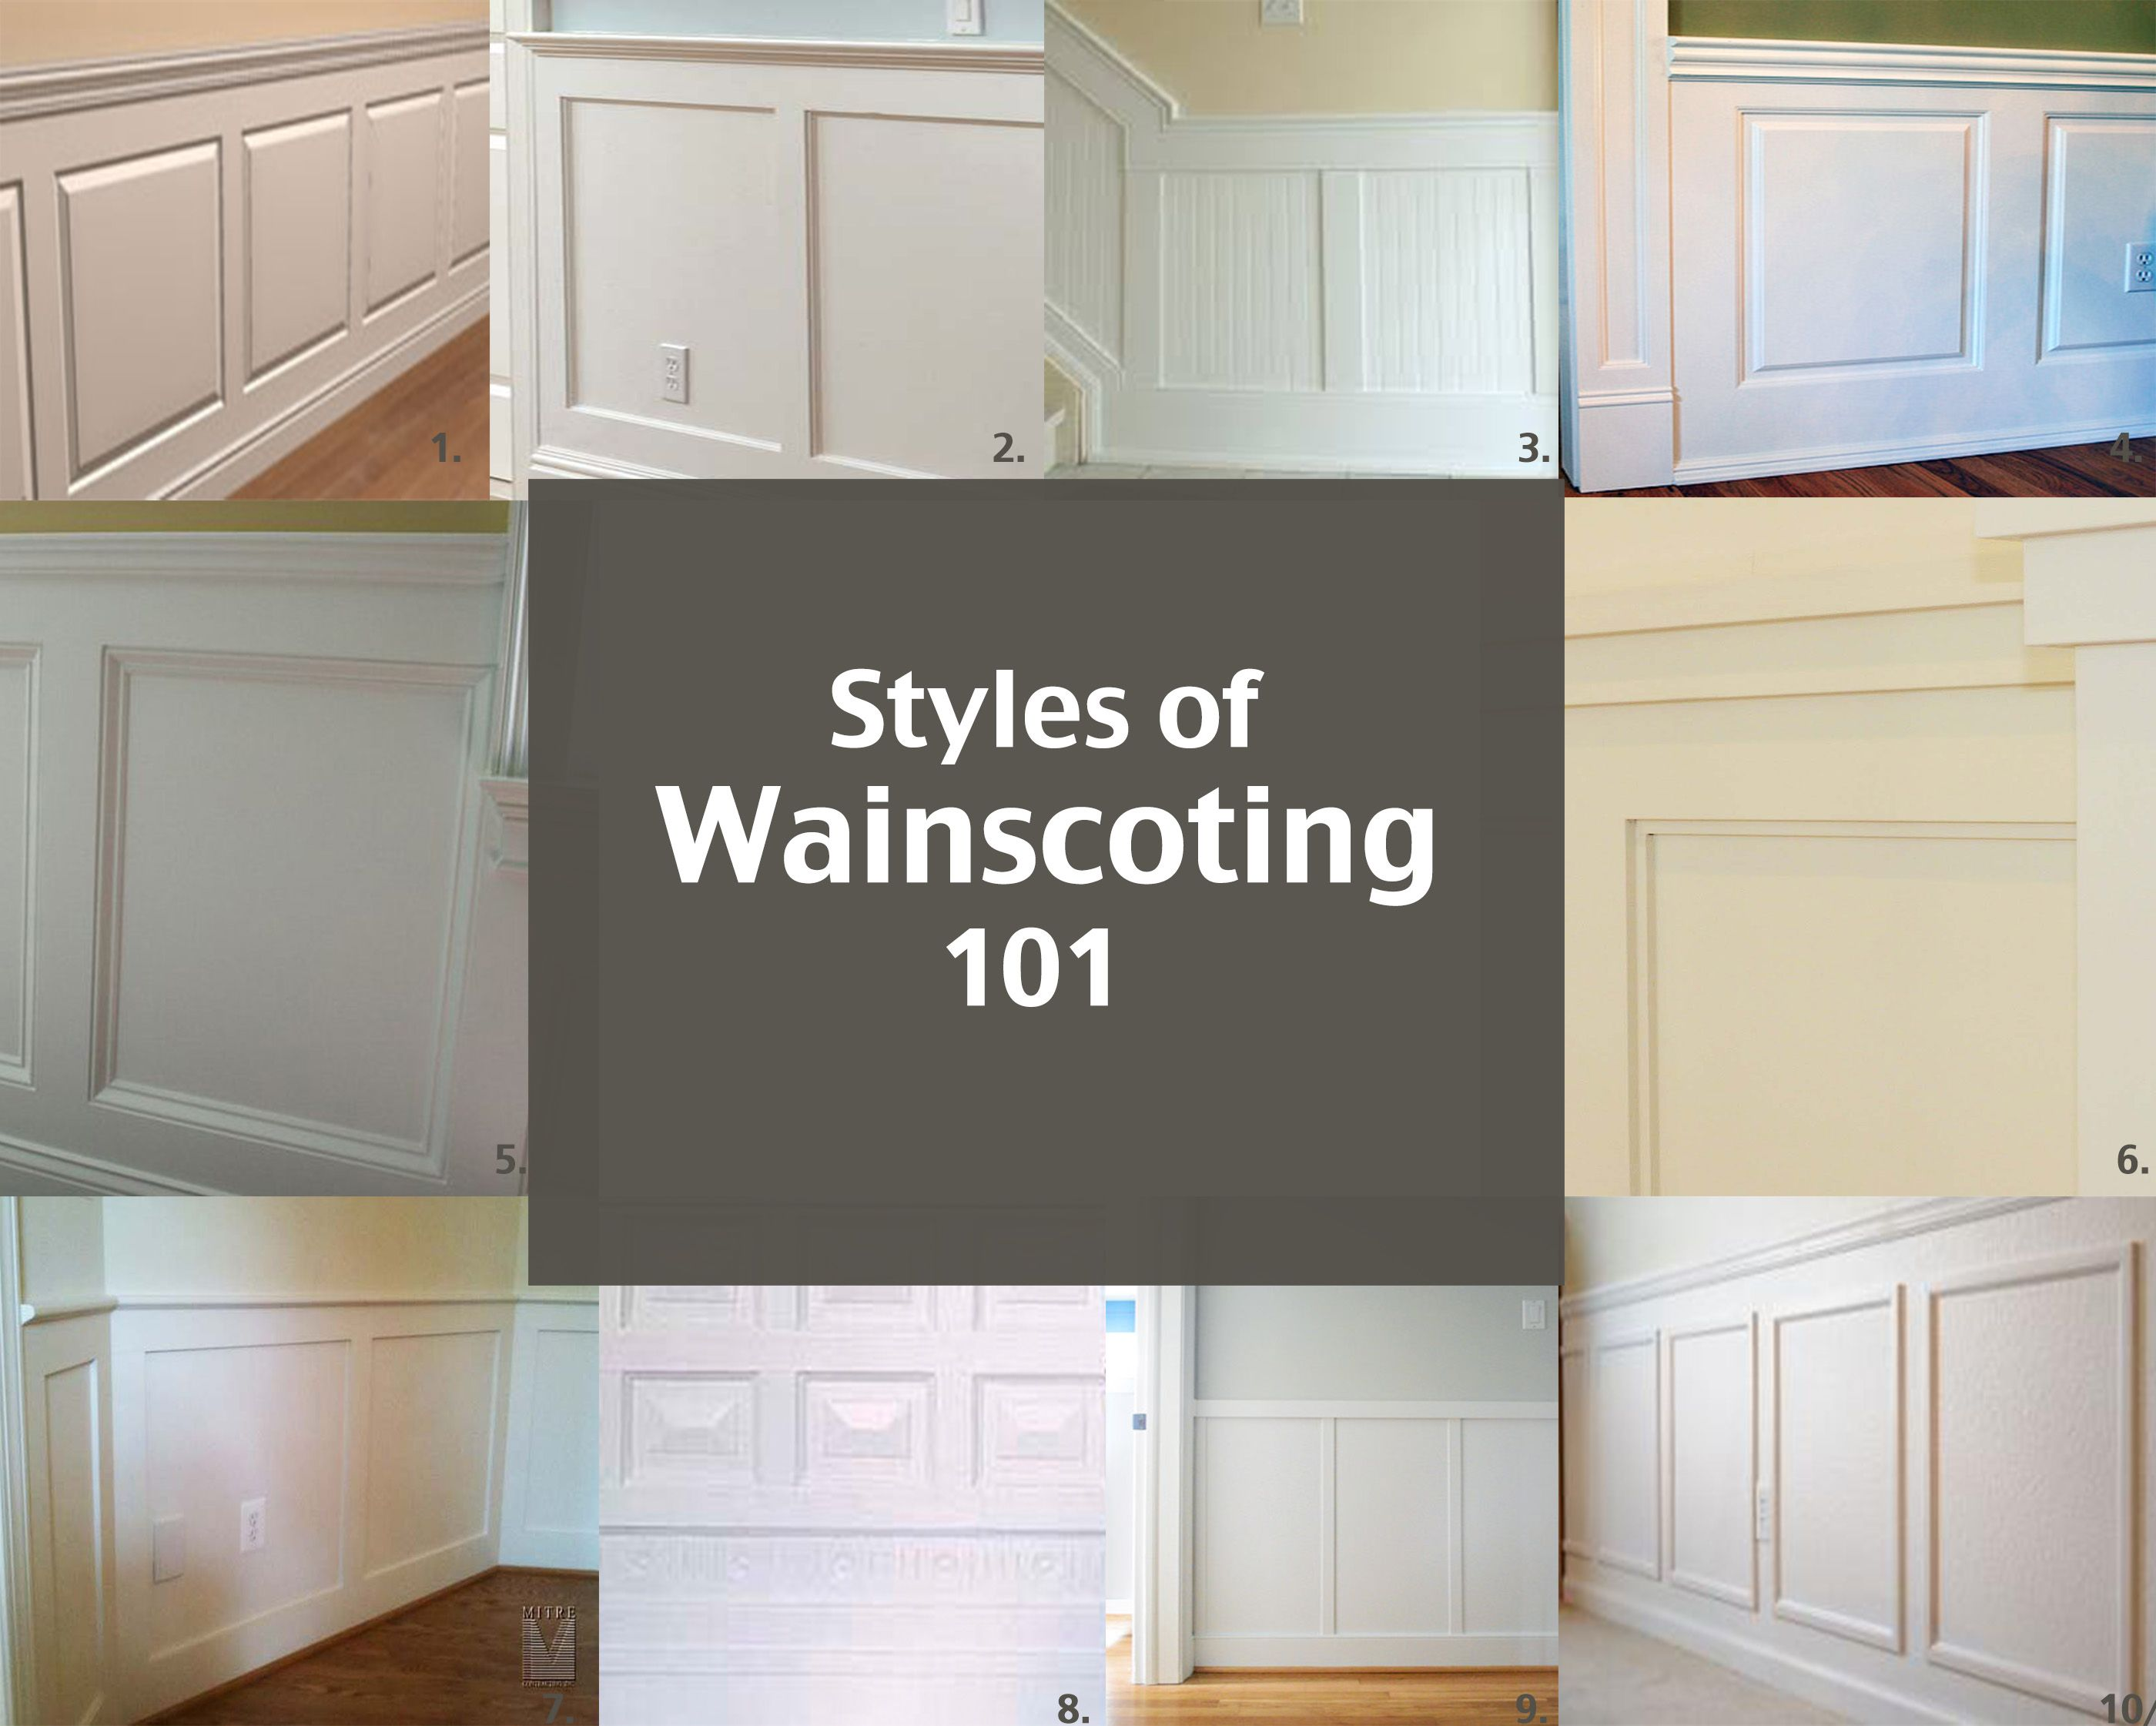 top 25+ best wainscoting ideas ideas on pinterest | wainscoting